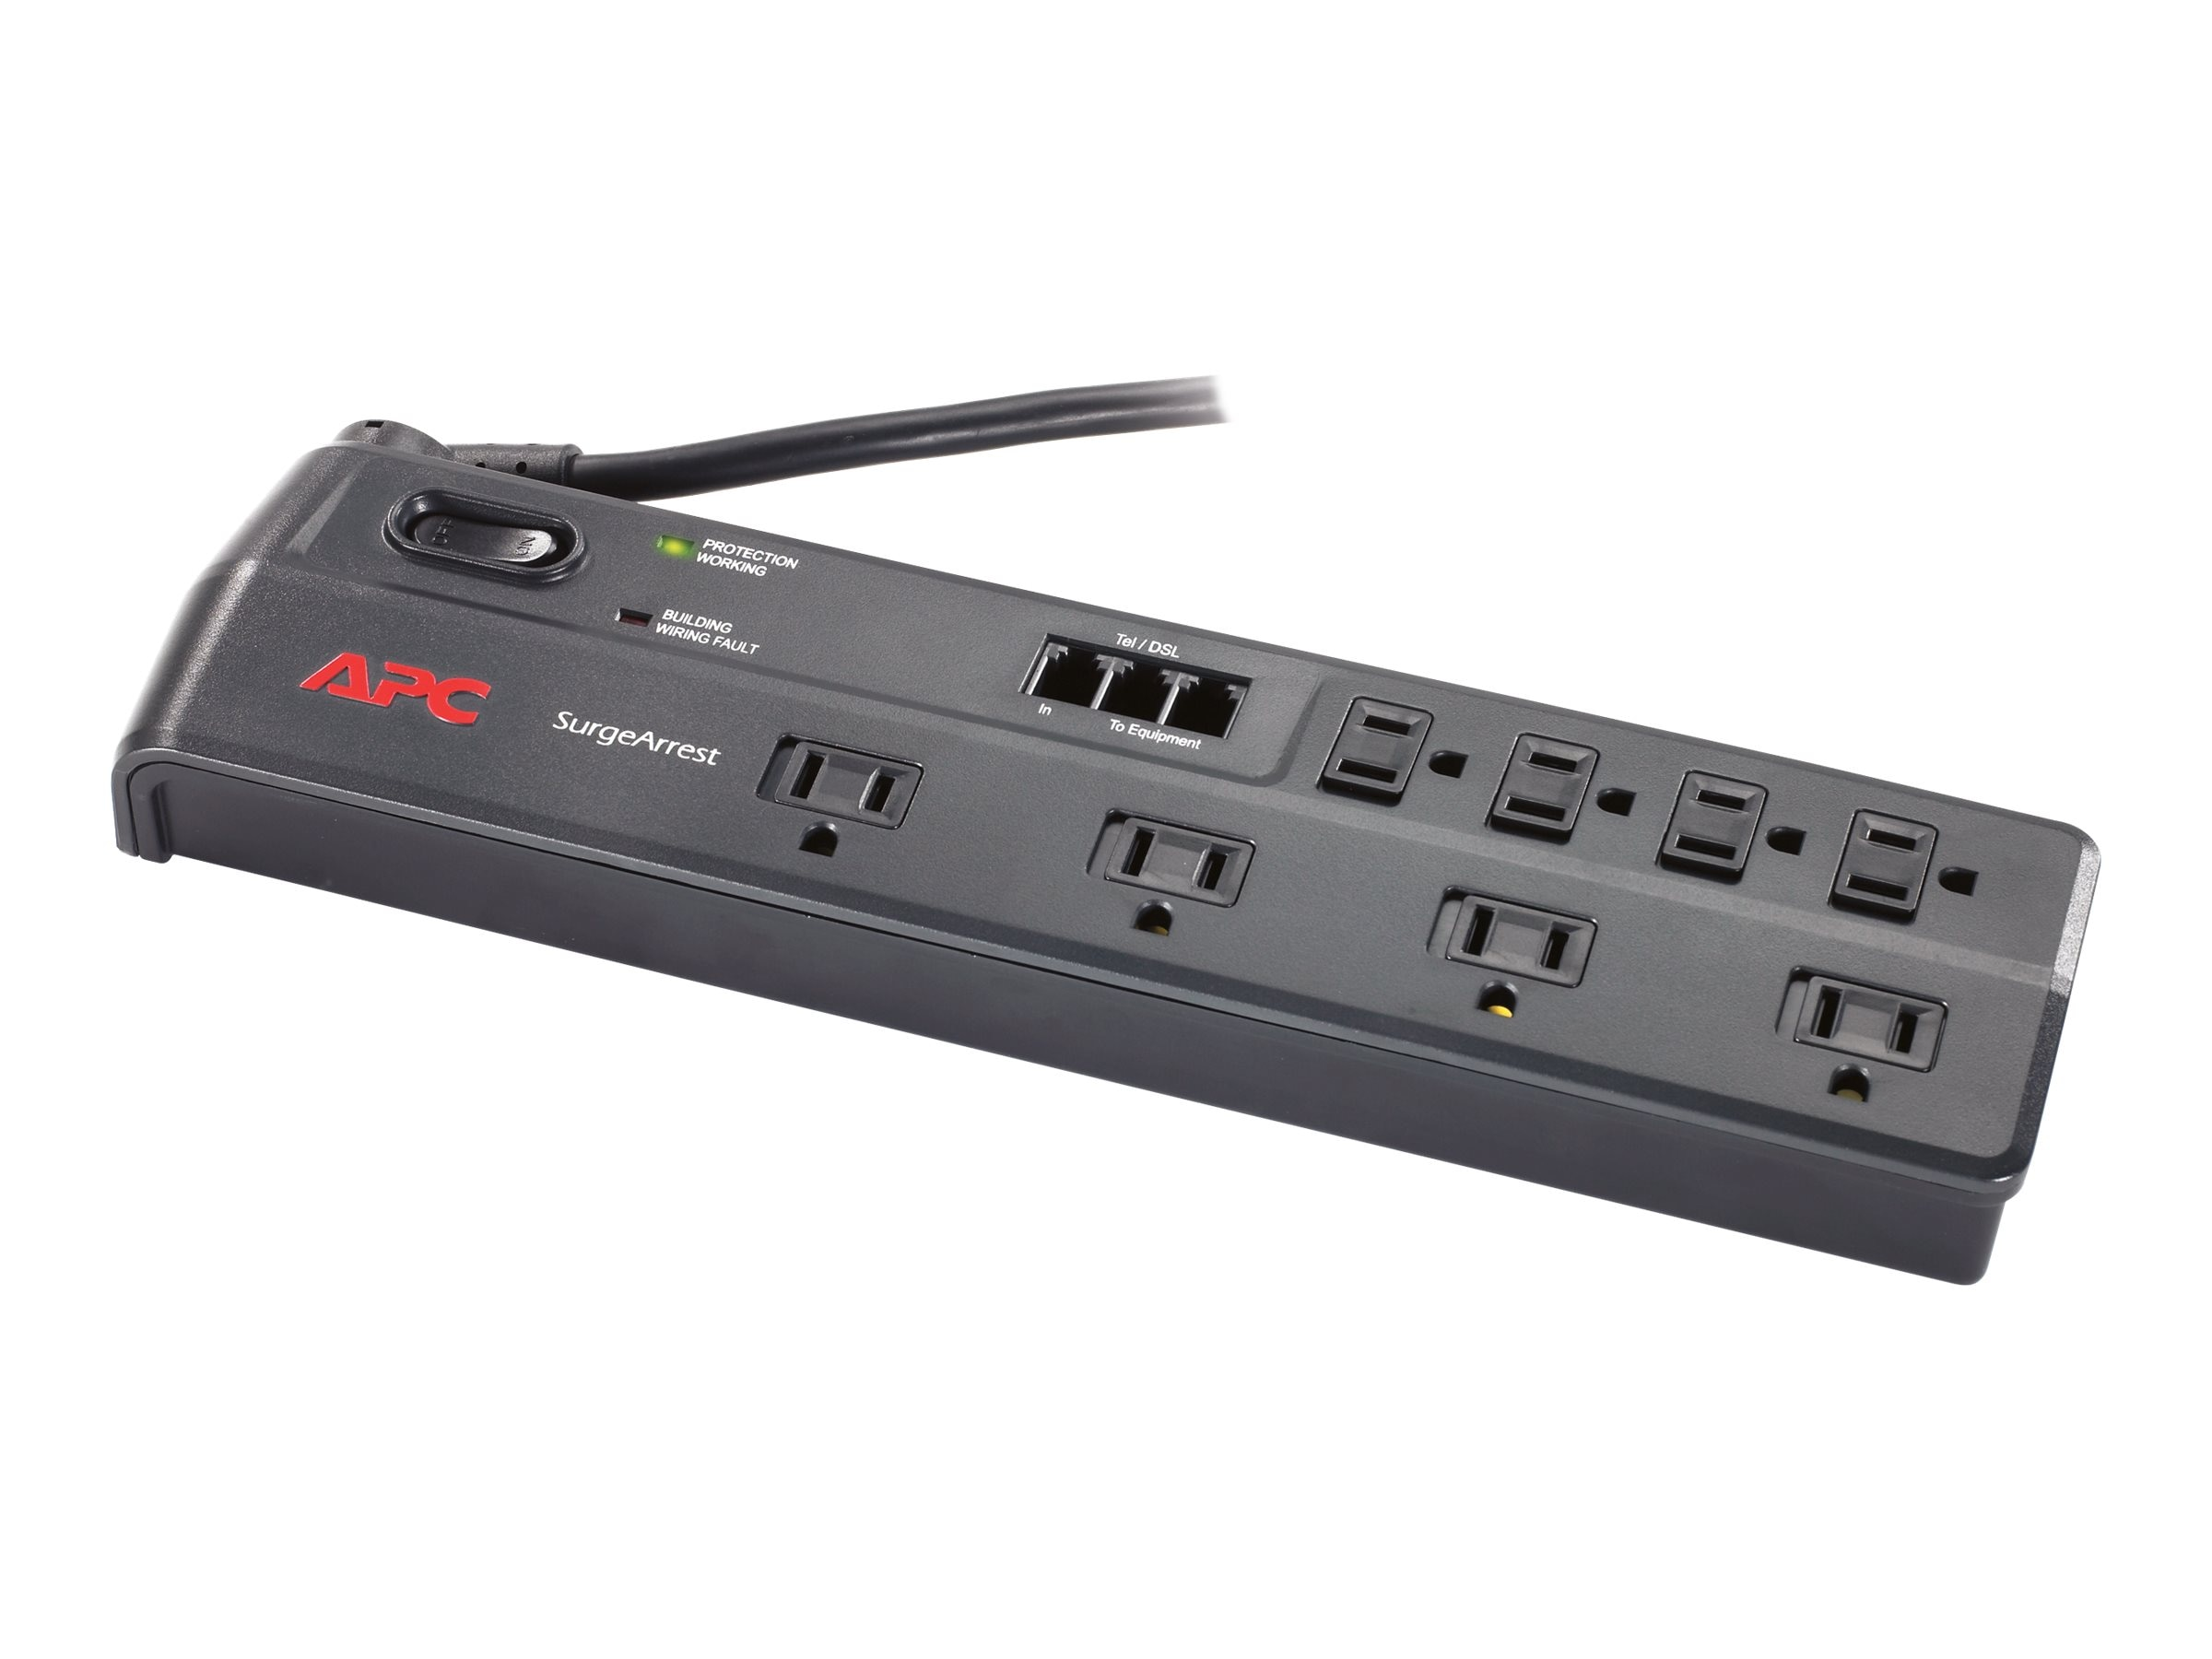 APC Home Office SurgeArrest (8) Outlets, 1750 joules, Telephone Splitter